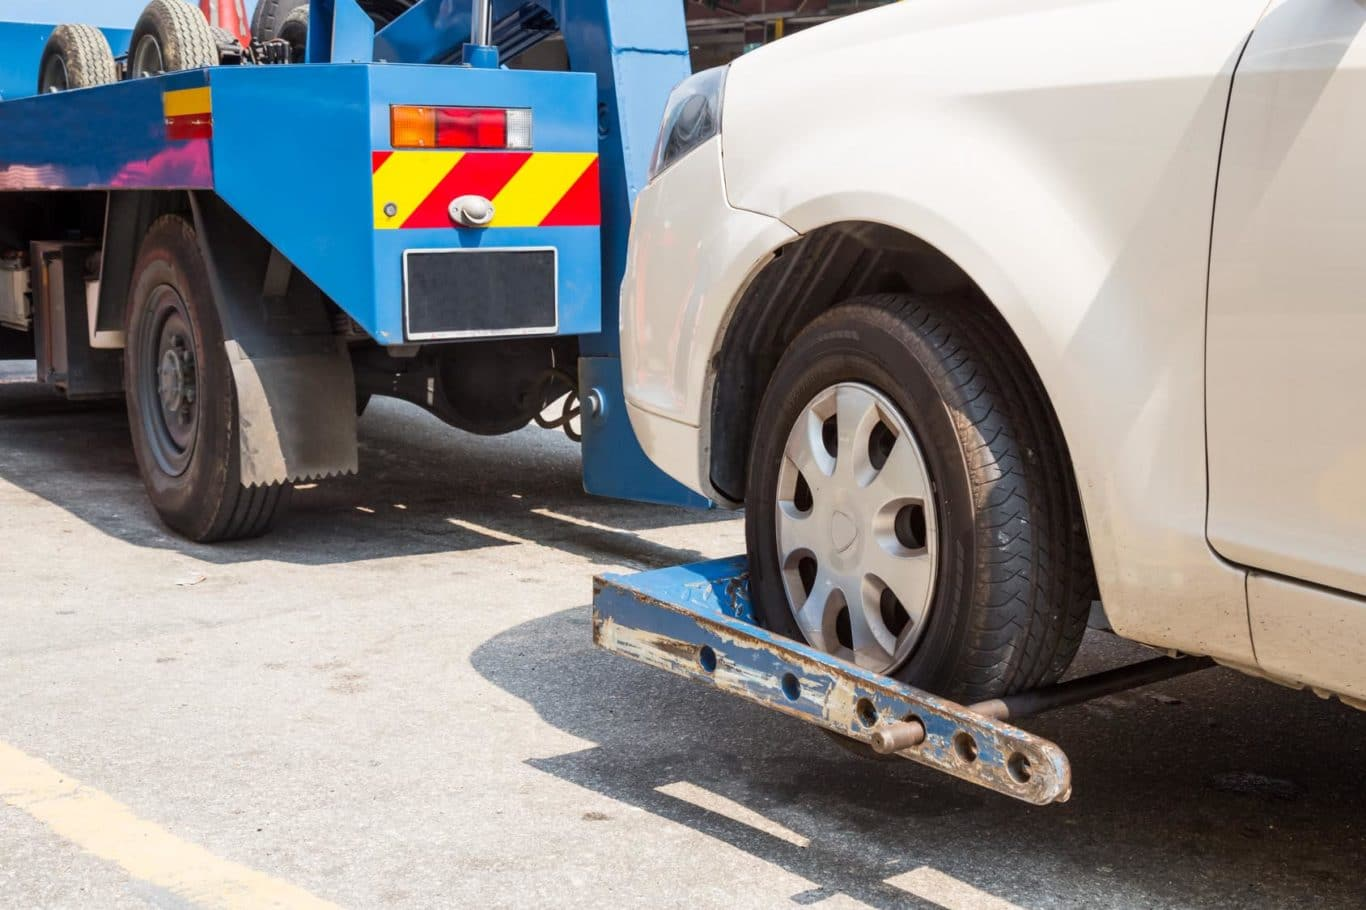 Beaumont expert Towing services